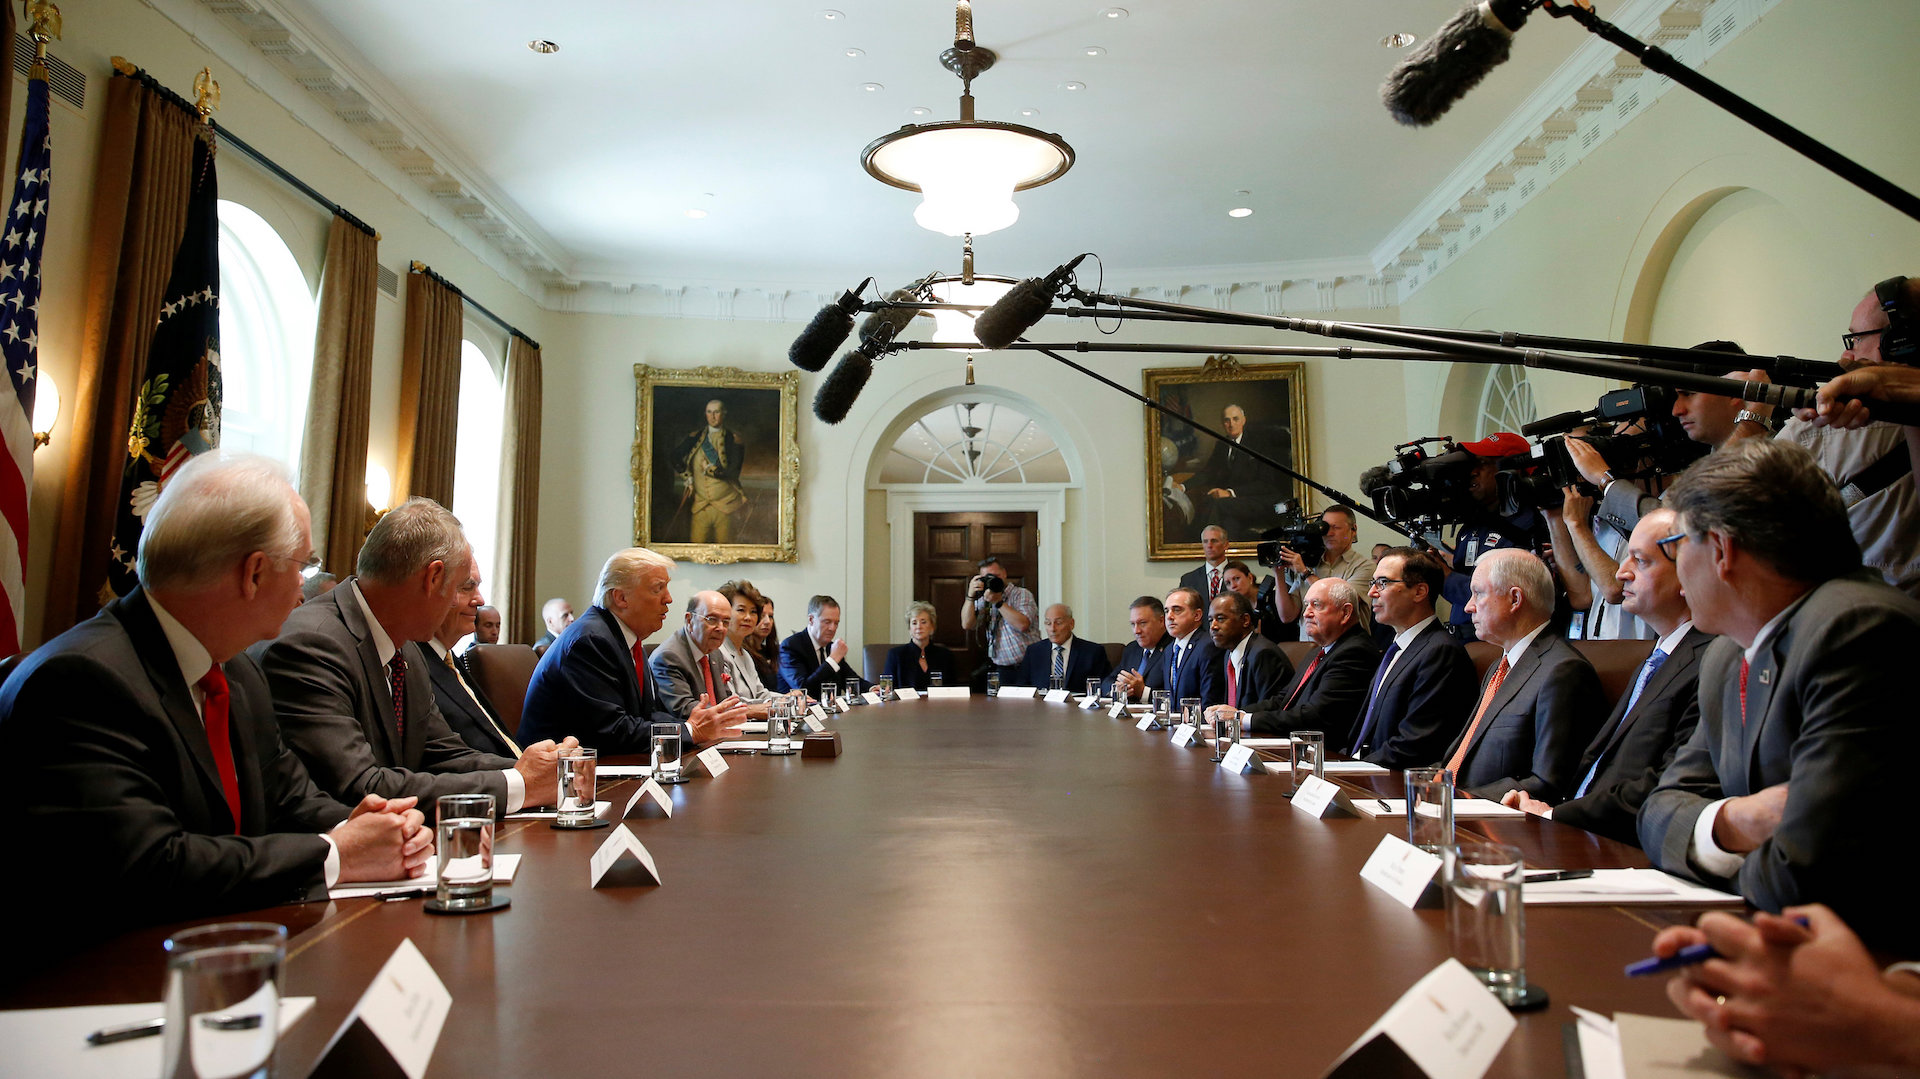 Trump Holds Cabinet Meeting With New Chief Of Staff The Washington - 2017 july 31